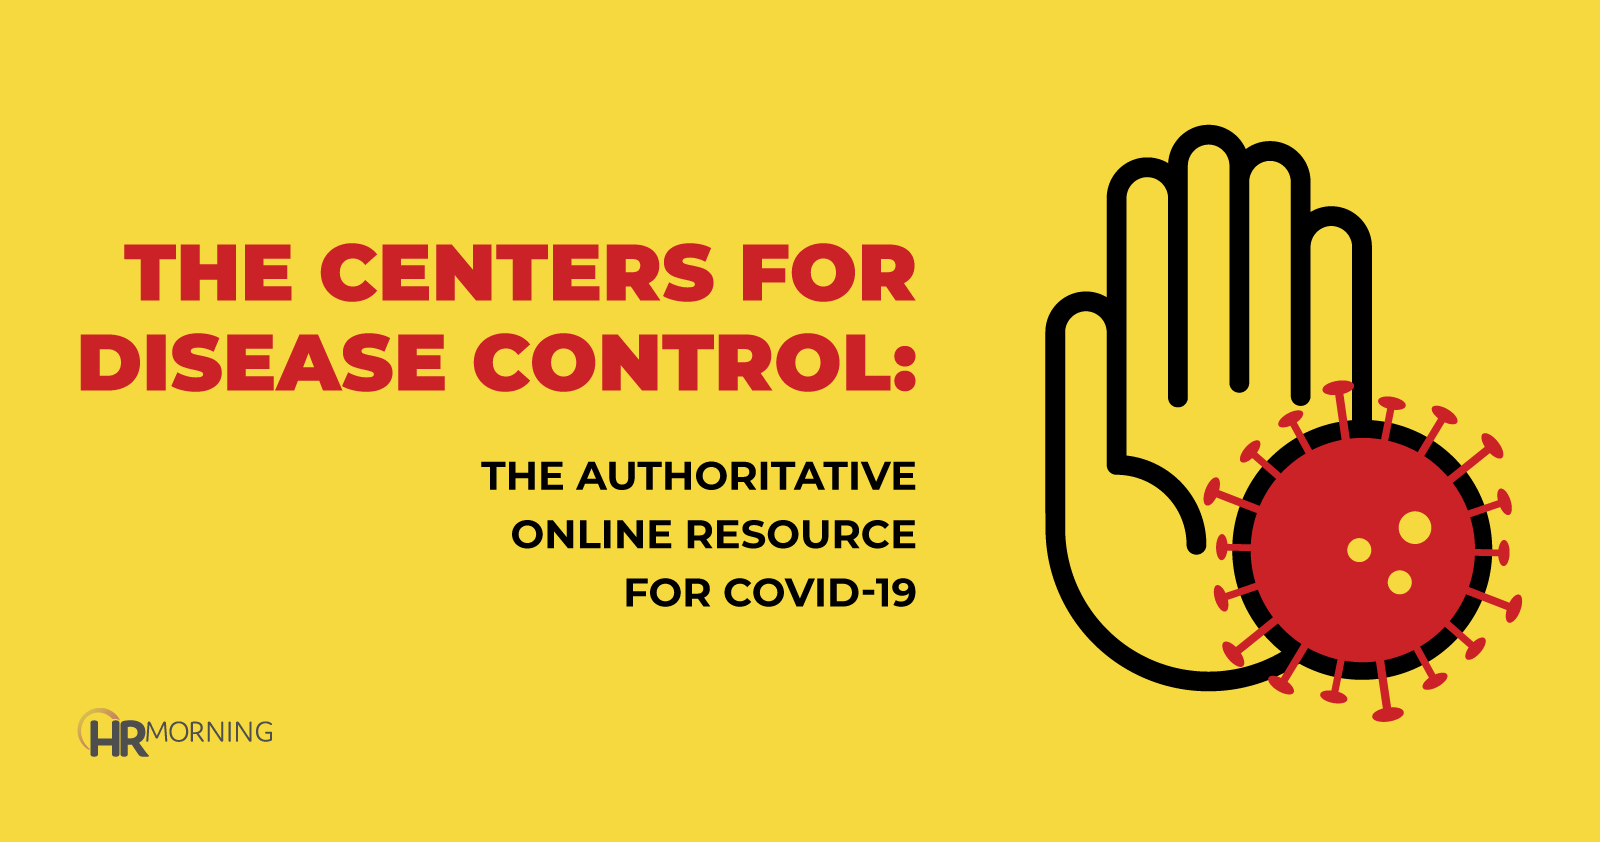 Centers for Disease Control Online Resource